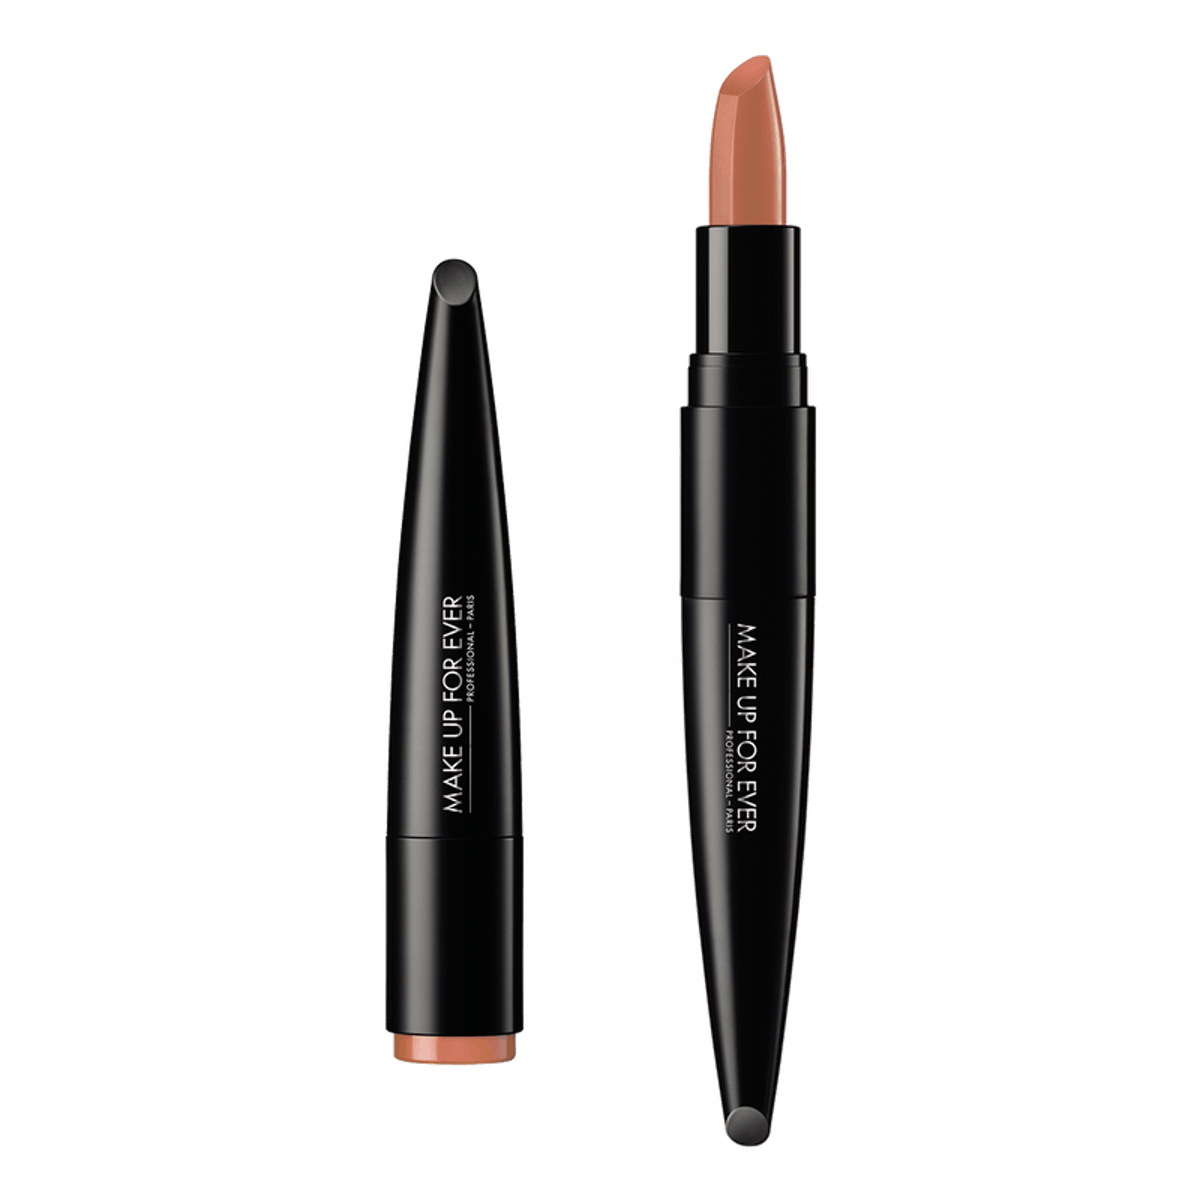 Rogue Artist Intense Color Beautifying Lipstick in Bold Cinnamon